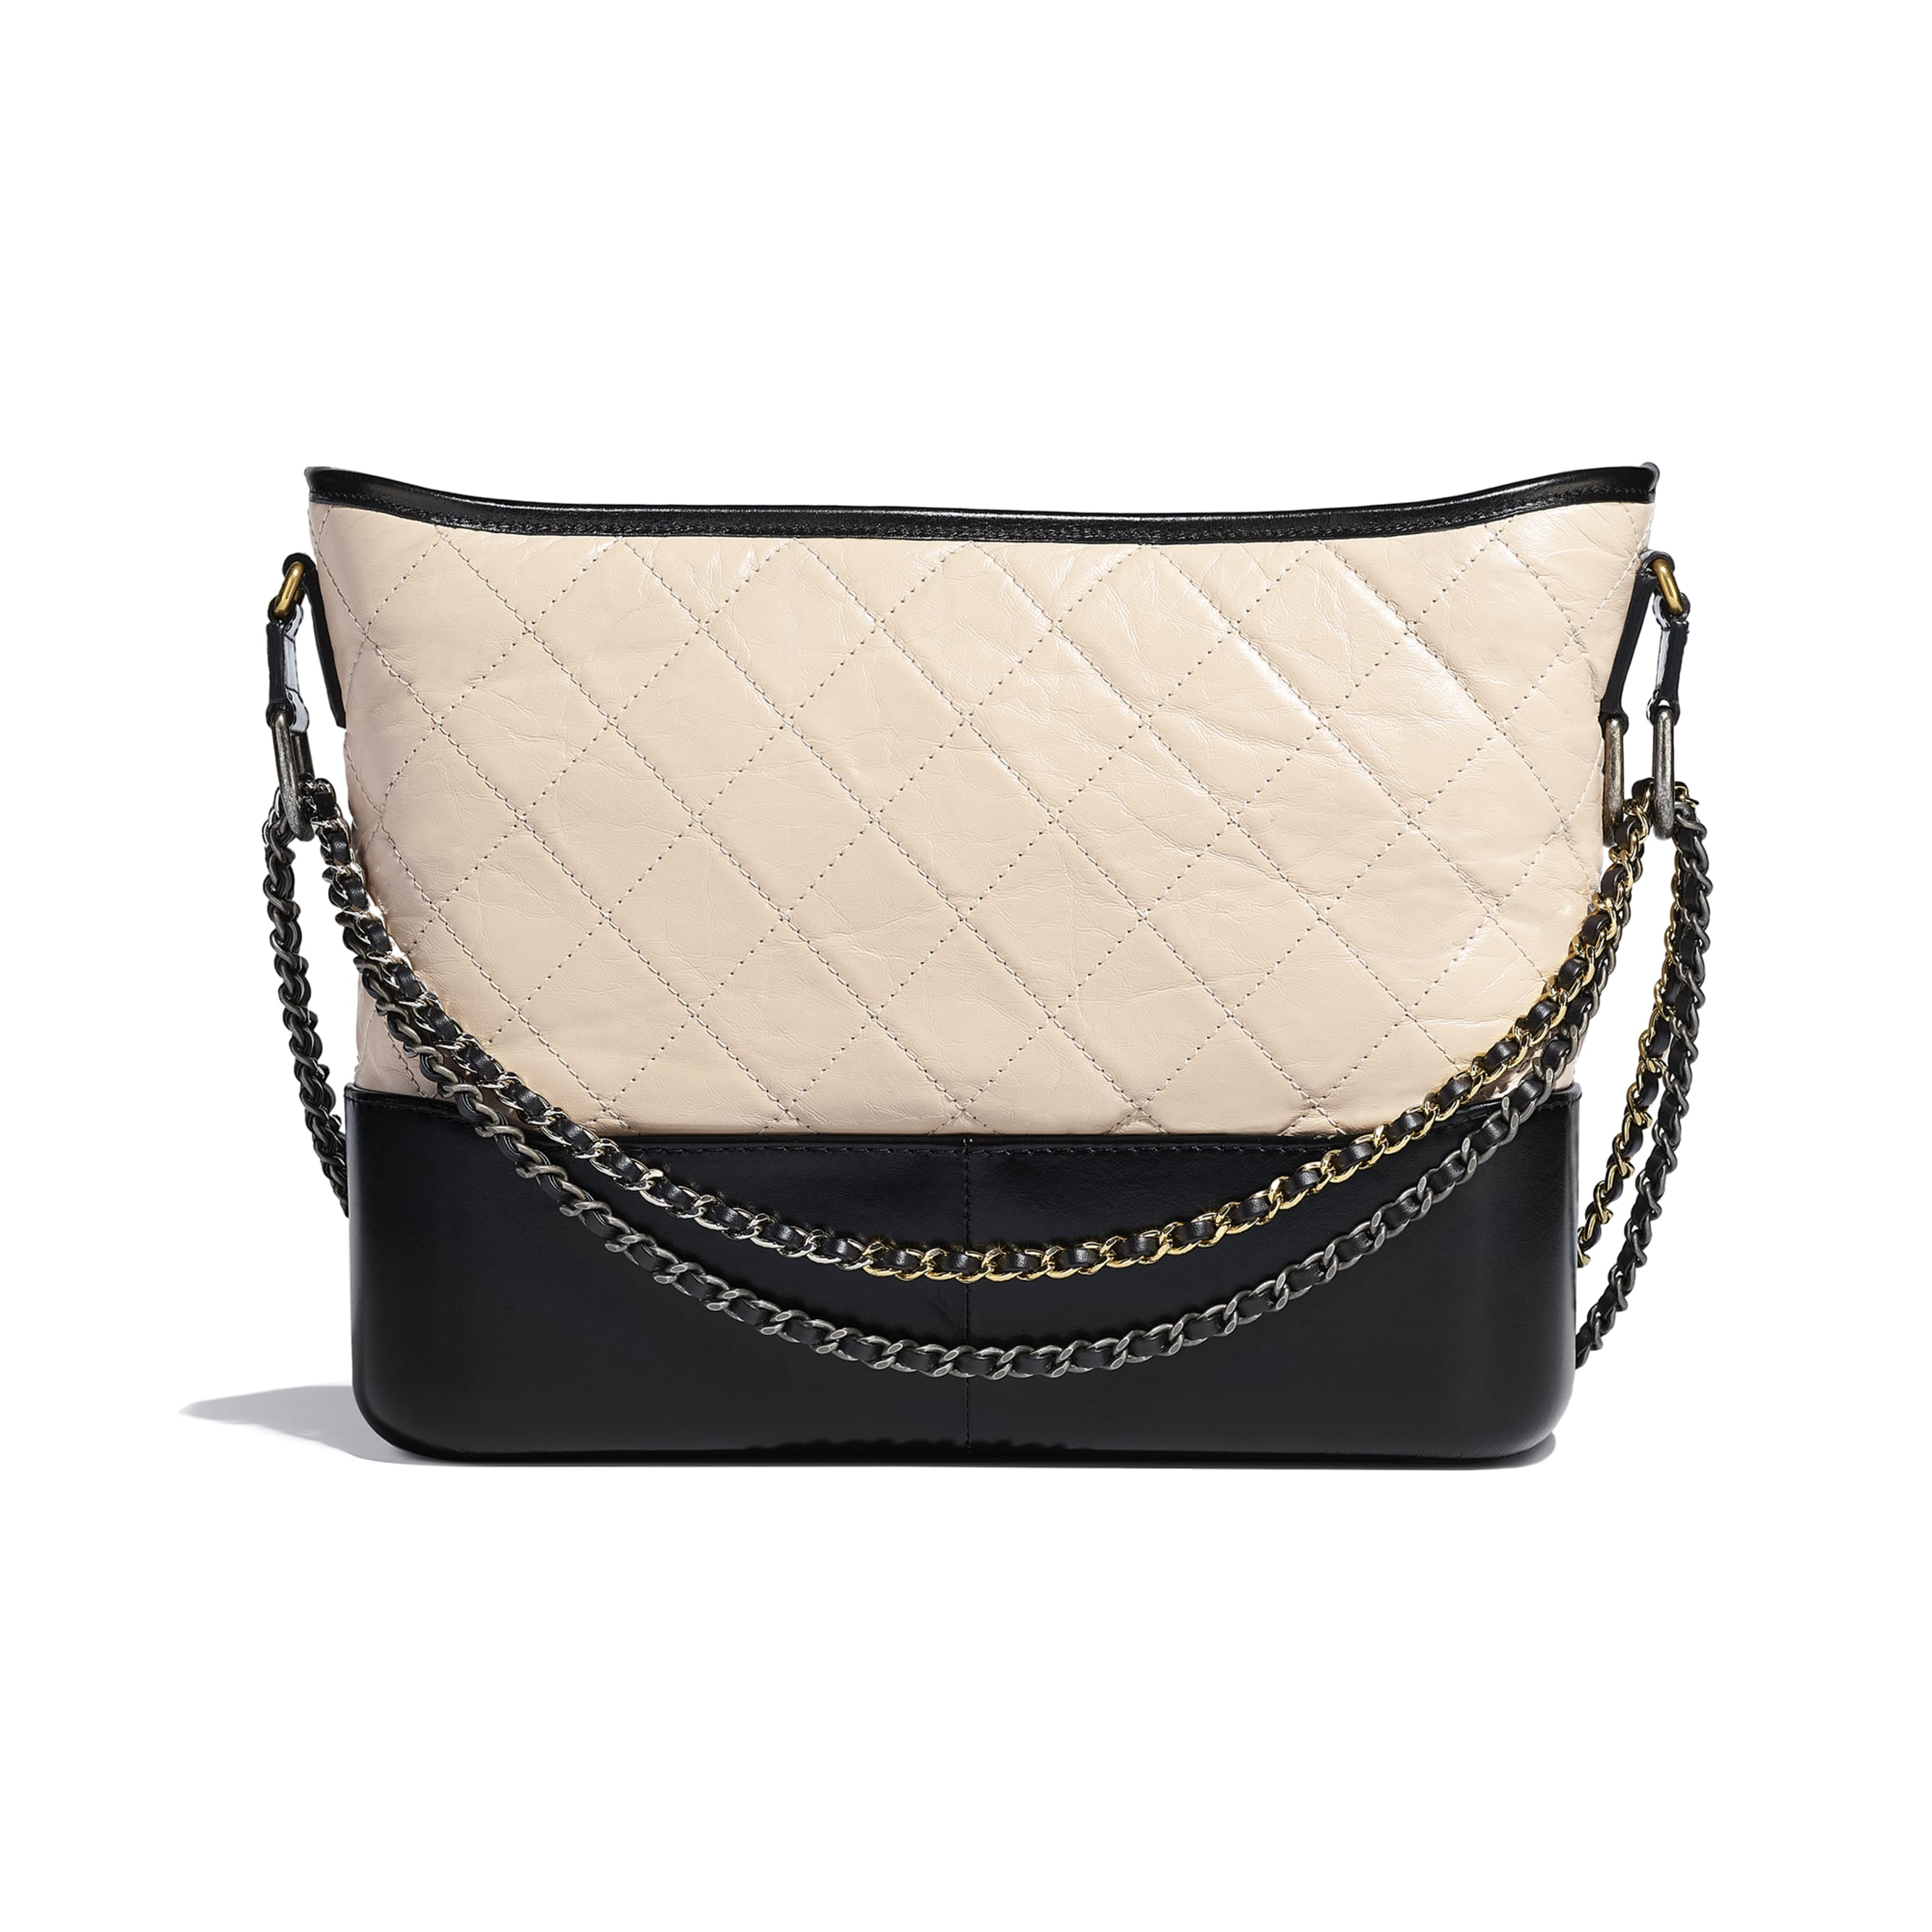 CHANEL'S GABRIELLE Large Hobo Bag - Beige & Black - Aged Calfskin, Smooth Calfskin, Gold-Tone, Silver-Tone & Ruthenium-Finish Metal - CHANEL - Alternative view - see standard sized version